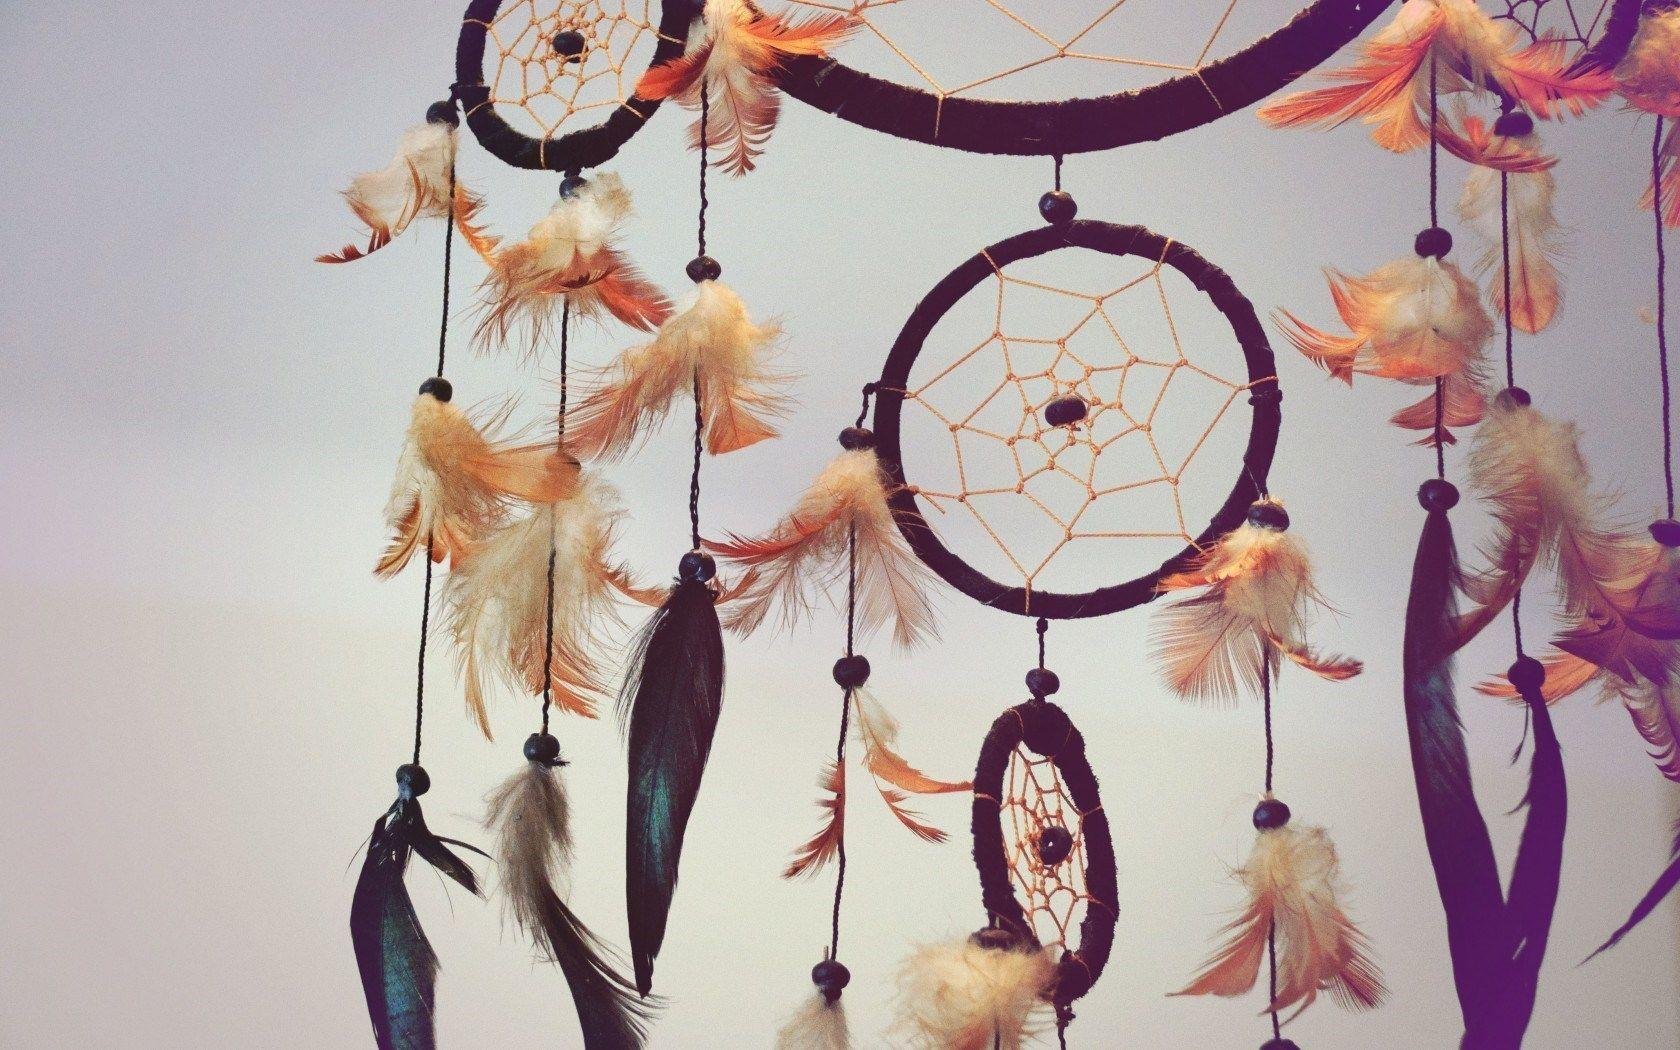 Dreamcatcher Wallpapers 6 amazing backgrounds 22176 HD Wallpapers